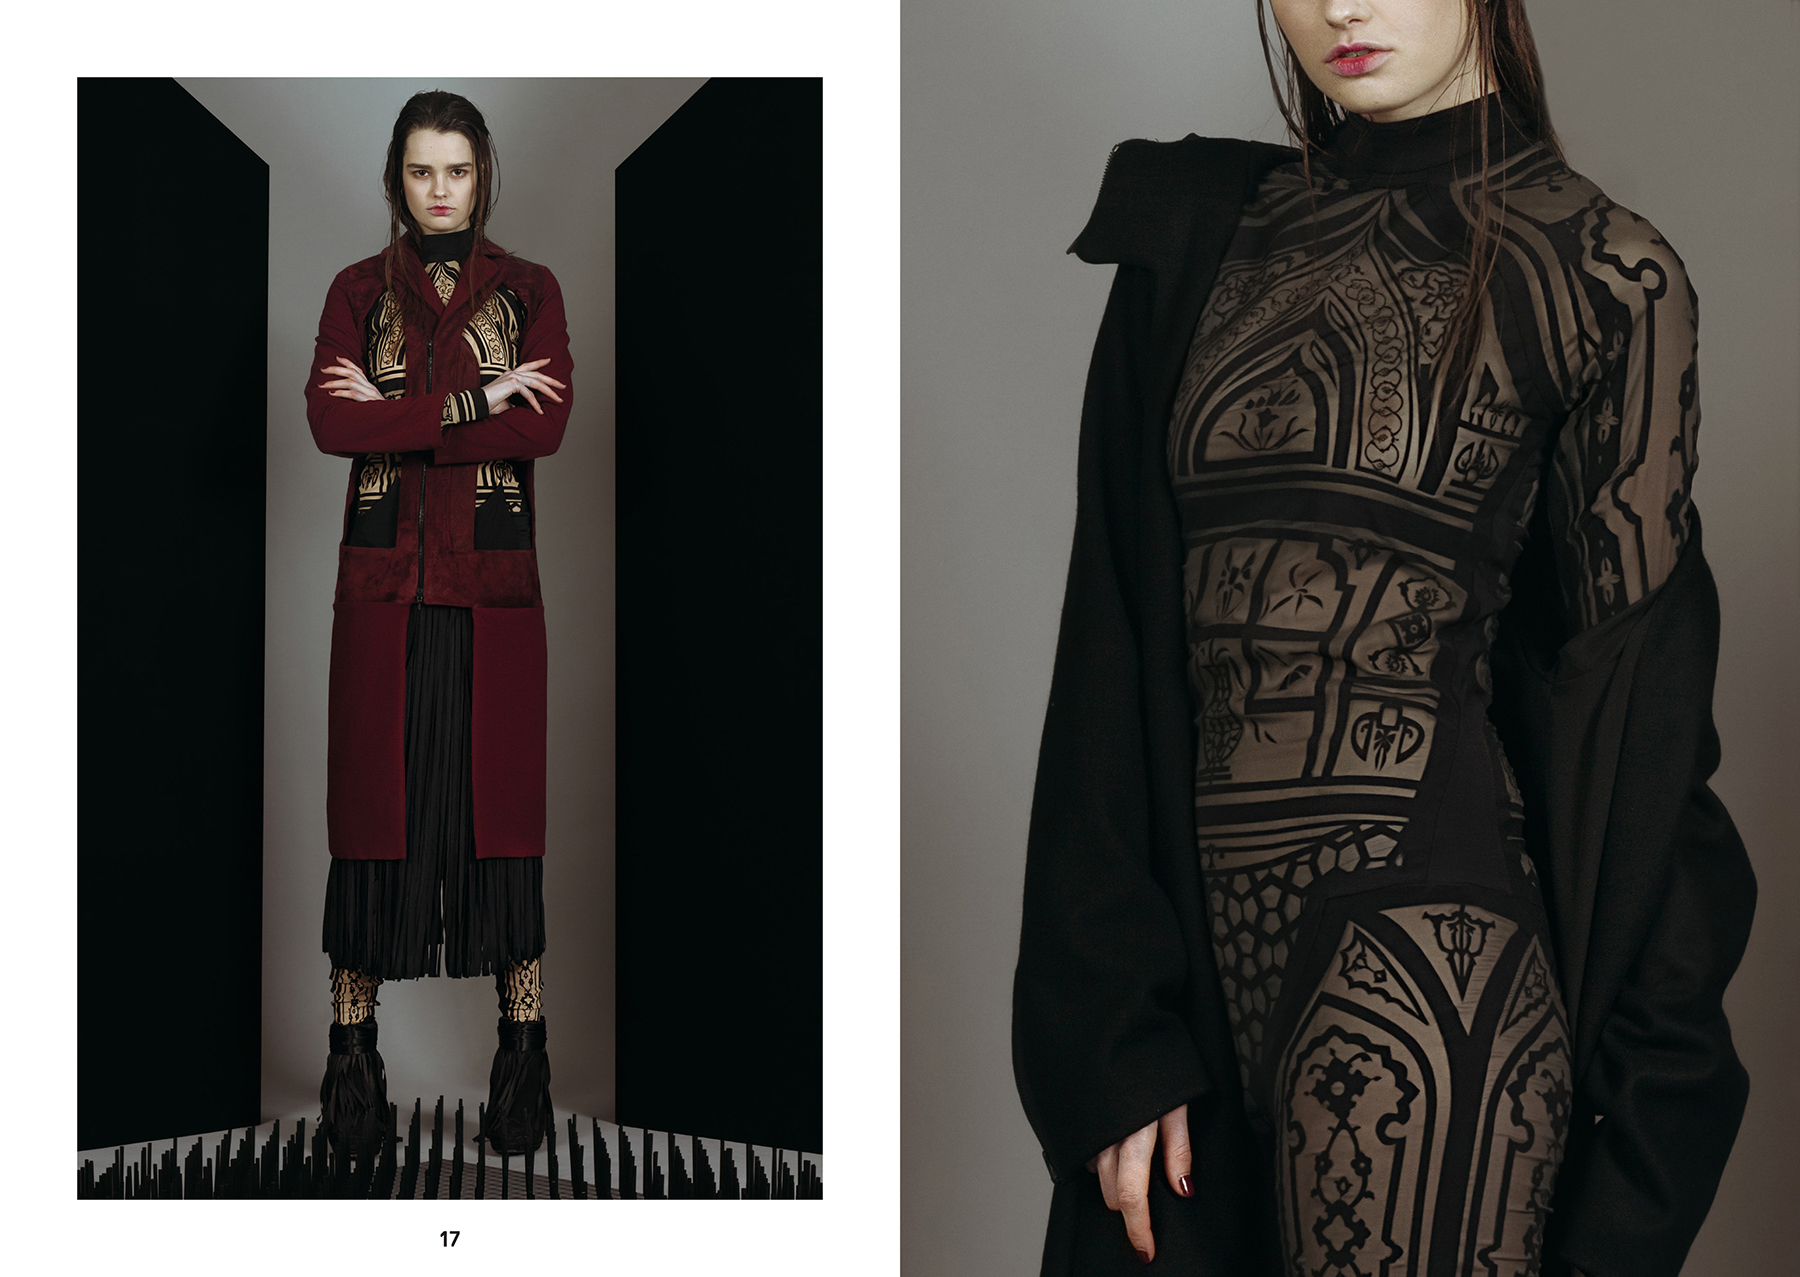 aw15_lookbook_digital_HIRES-10